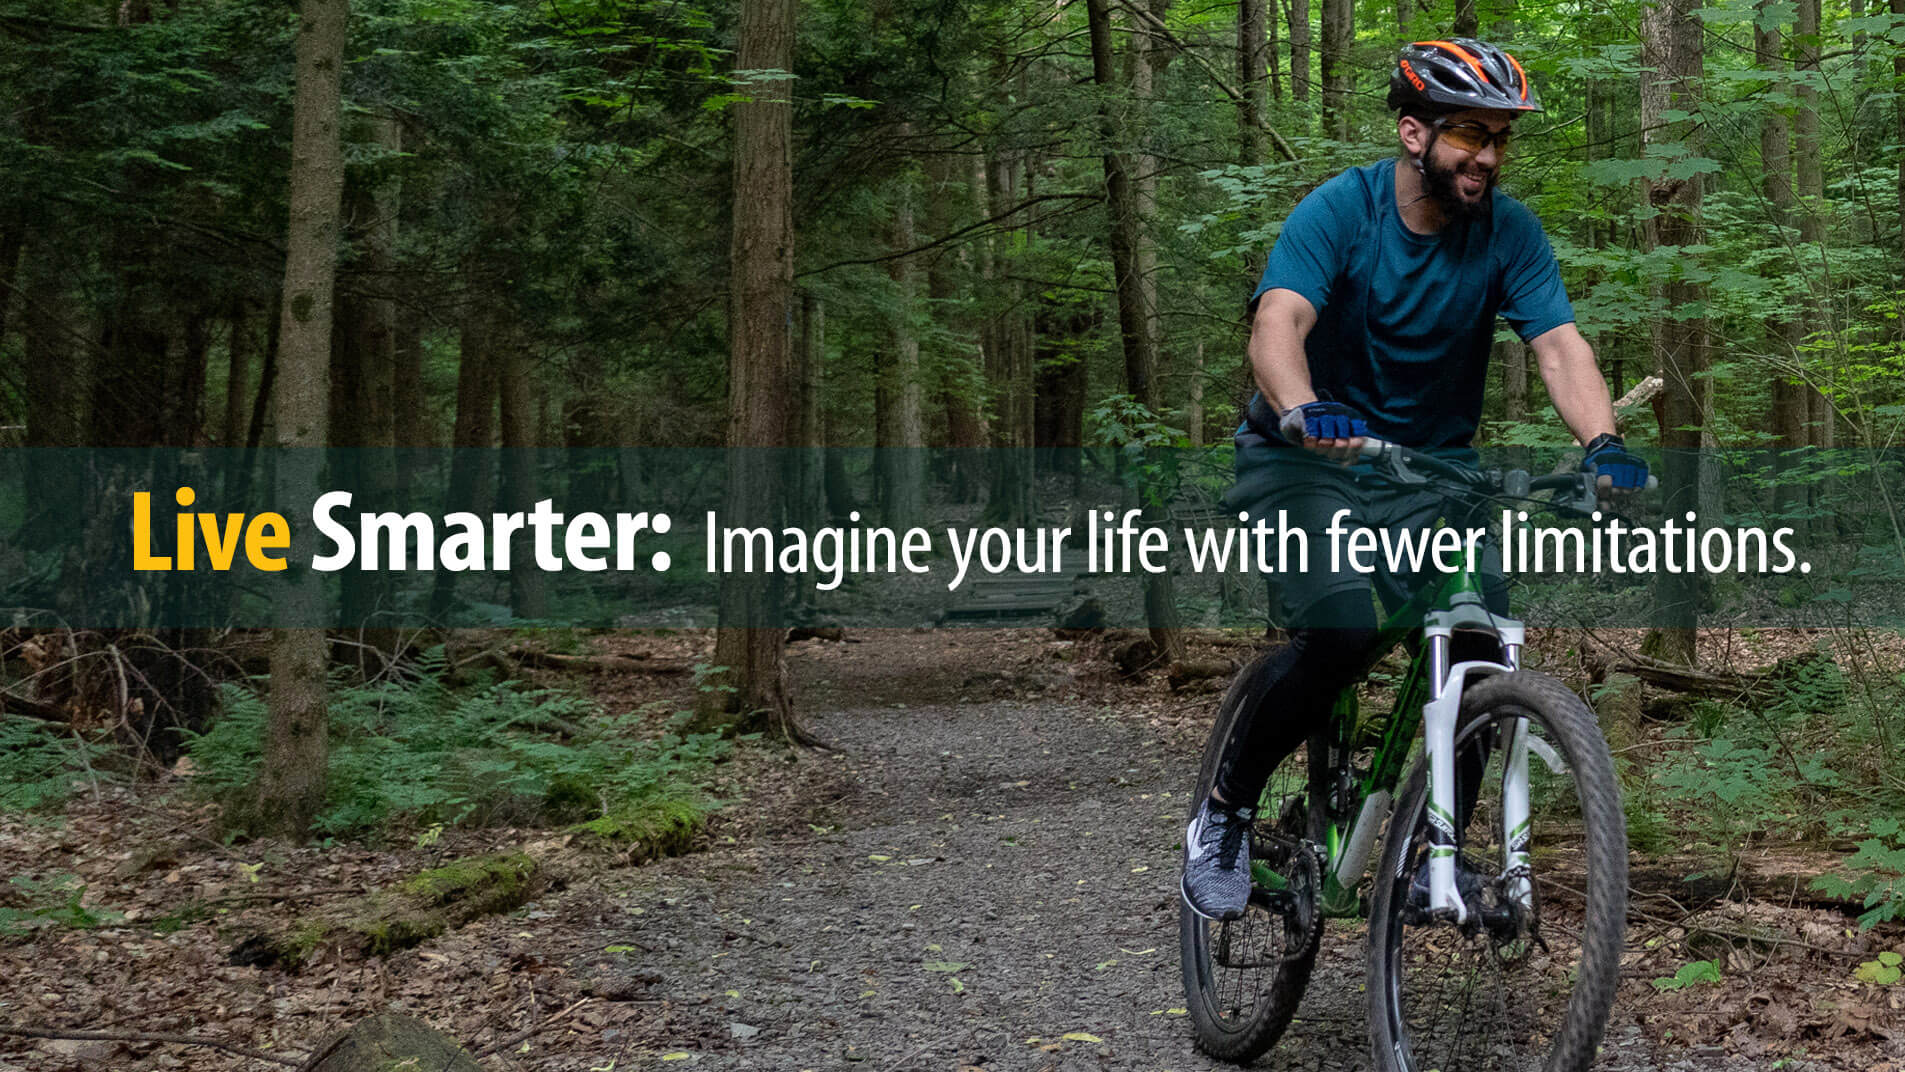 Smiling man riding mountain bike on forest trail enjoys life with fewer limitations of debt